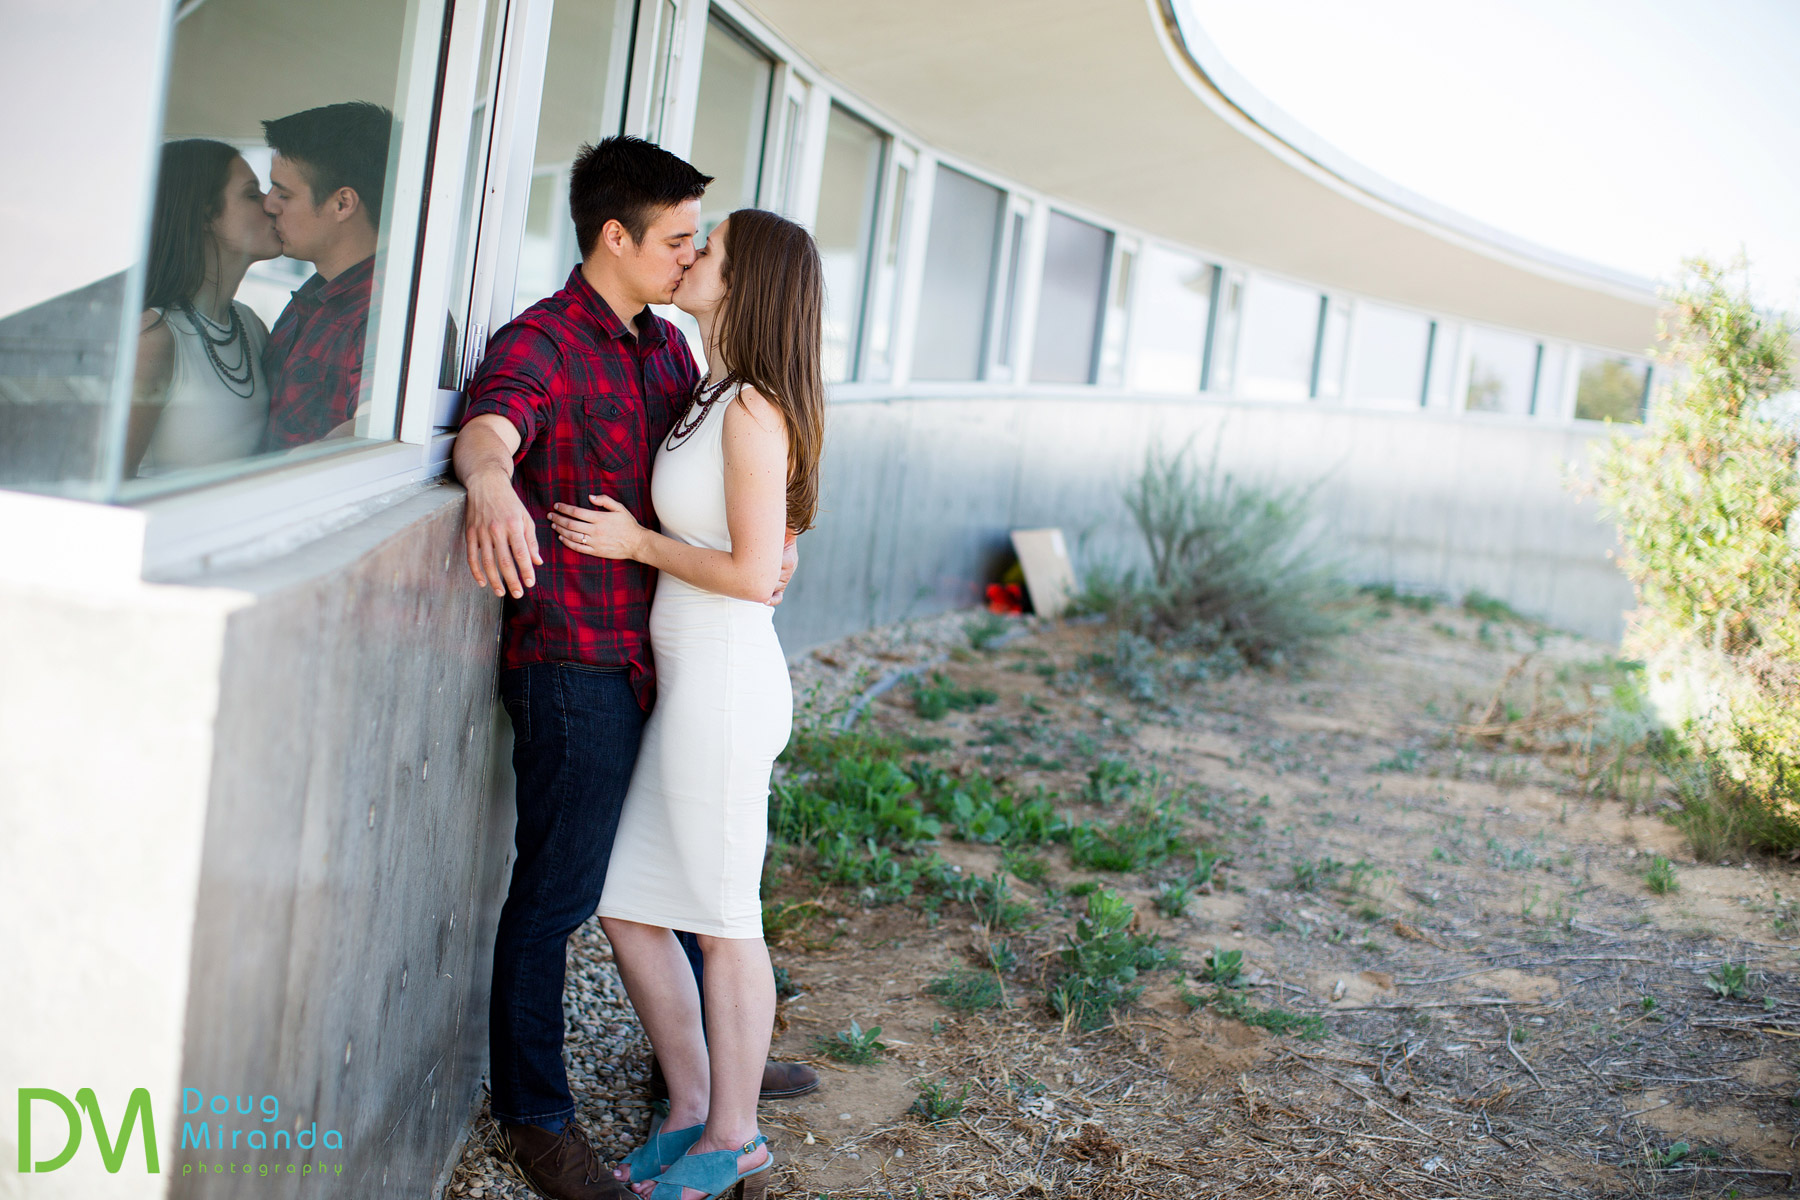 baldwin hills overlook engagement photos